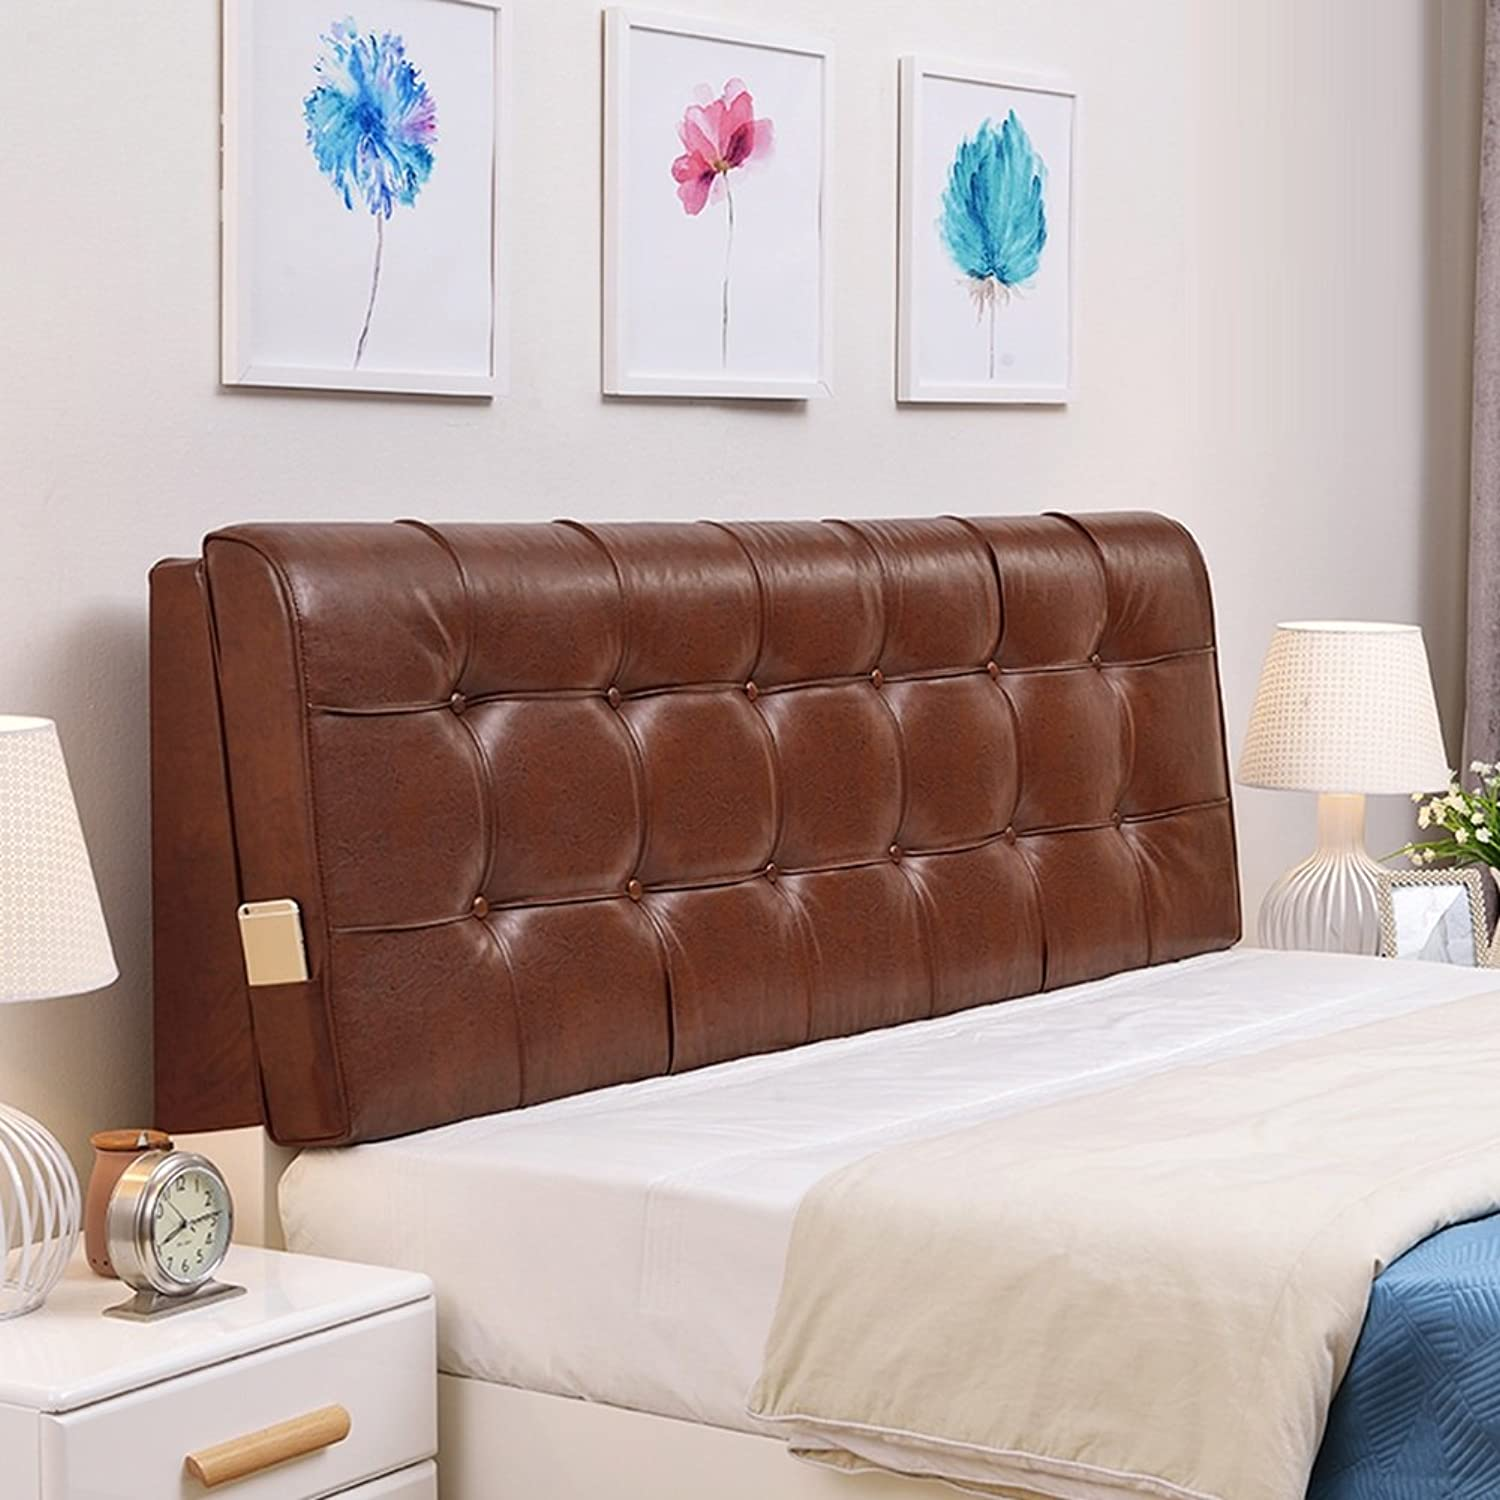 WENZHE Upholstered Fabric Headboard Bedside Cushion Pads Cover Bed Wedges Backrest Waist Pad Soft Case Bedside Multifunction, No Headboard, 7 colors, 8 Sizes (color   4 , Size   No headboard-120cm)